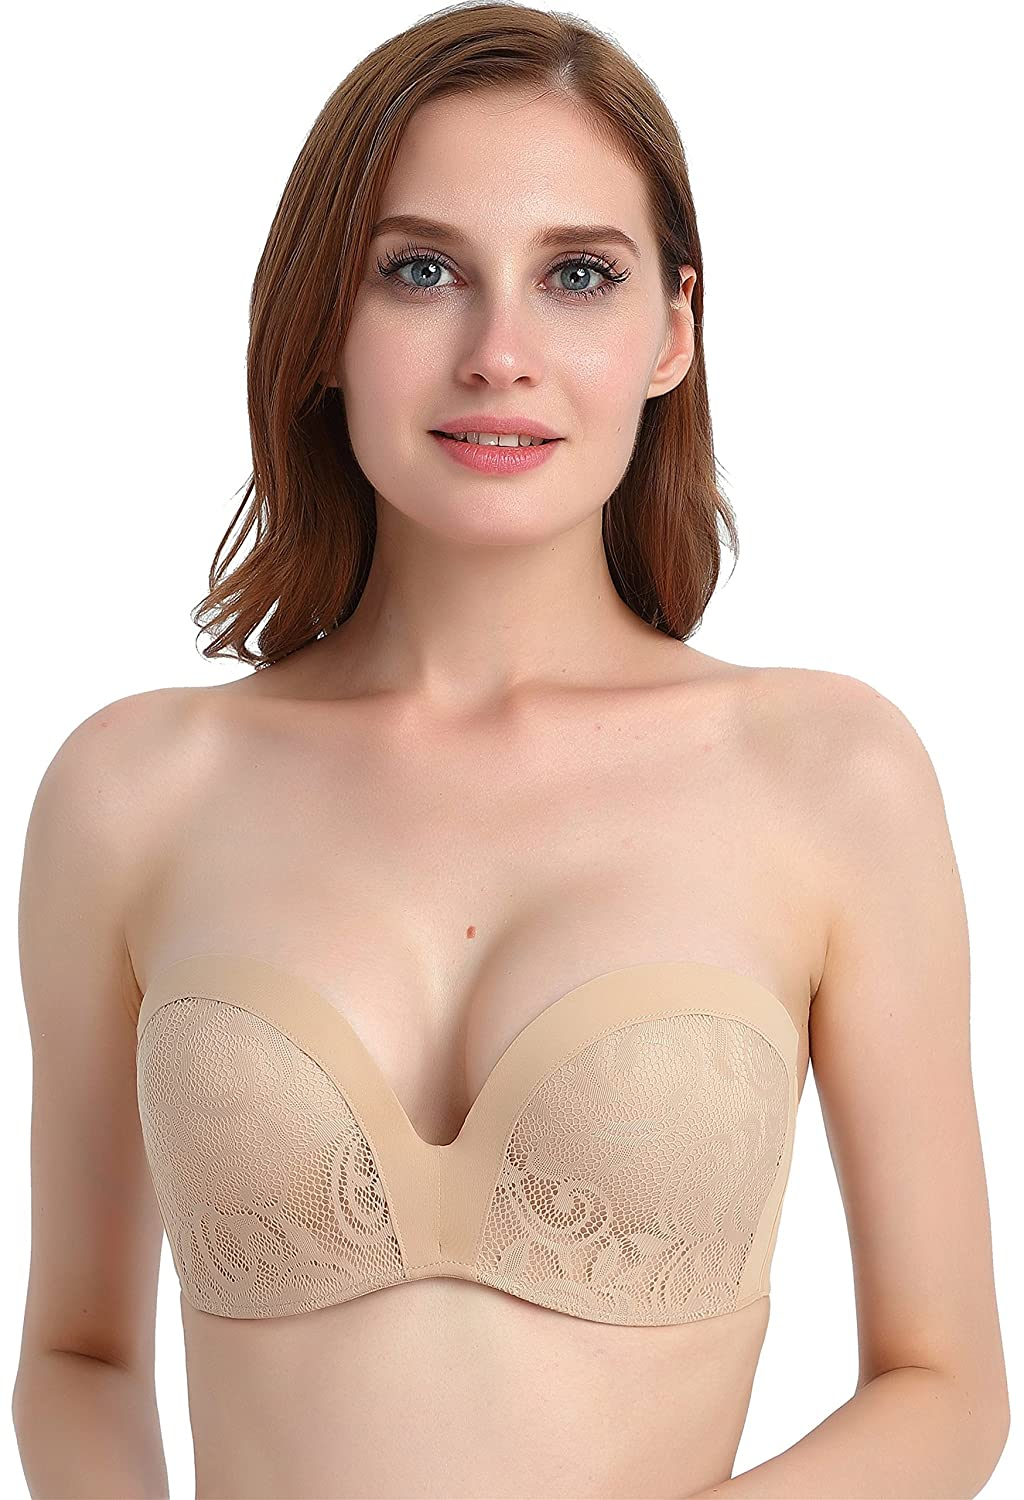 Chirrupy Chief Women's Wire Free Hand Shape Silicon Non-slip Strapless Lace Bra